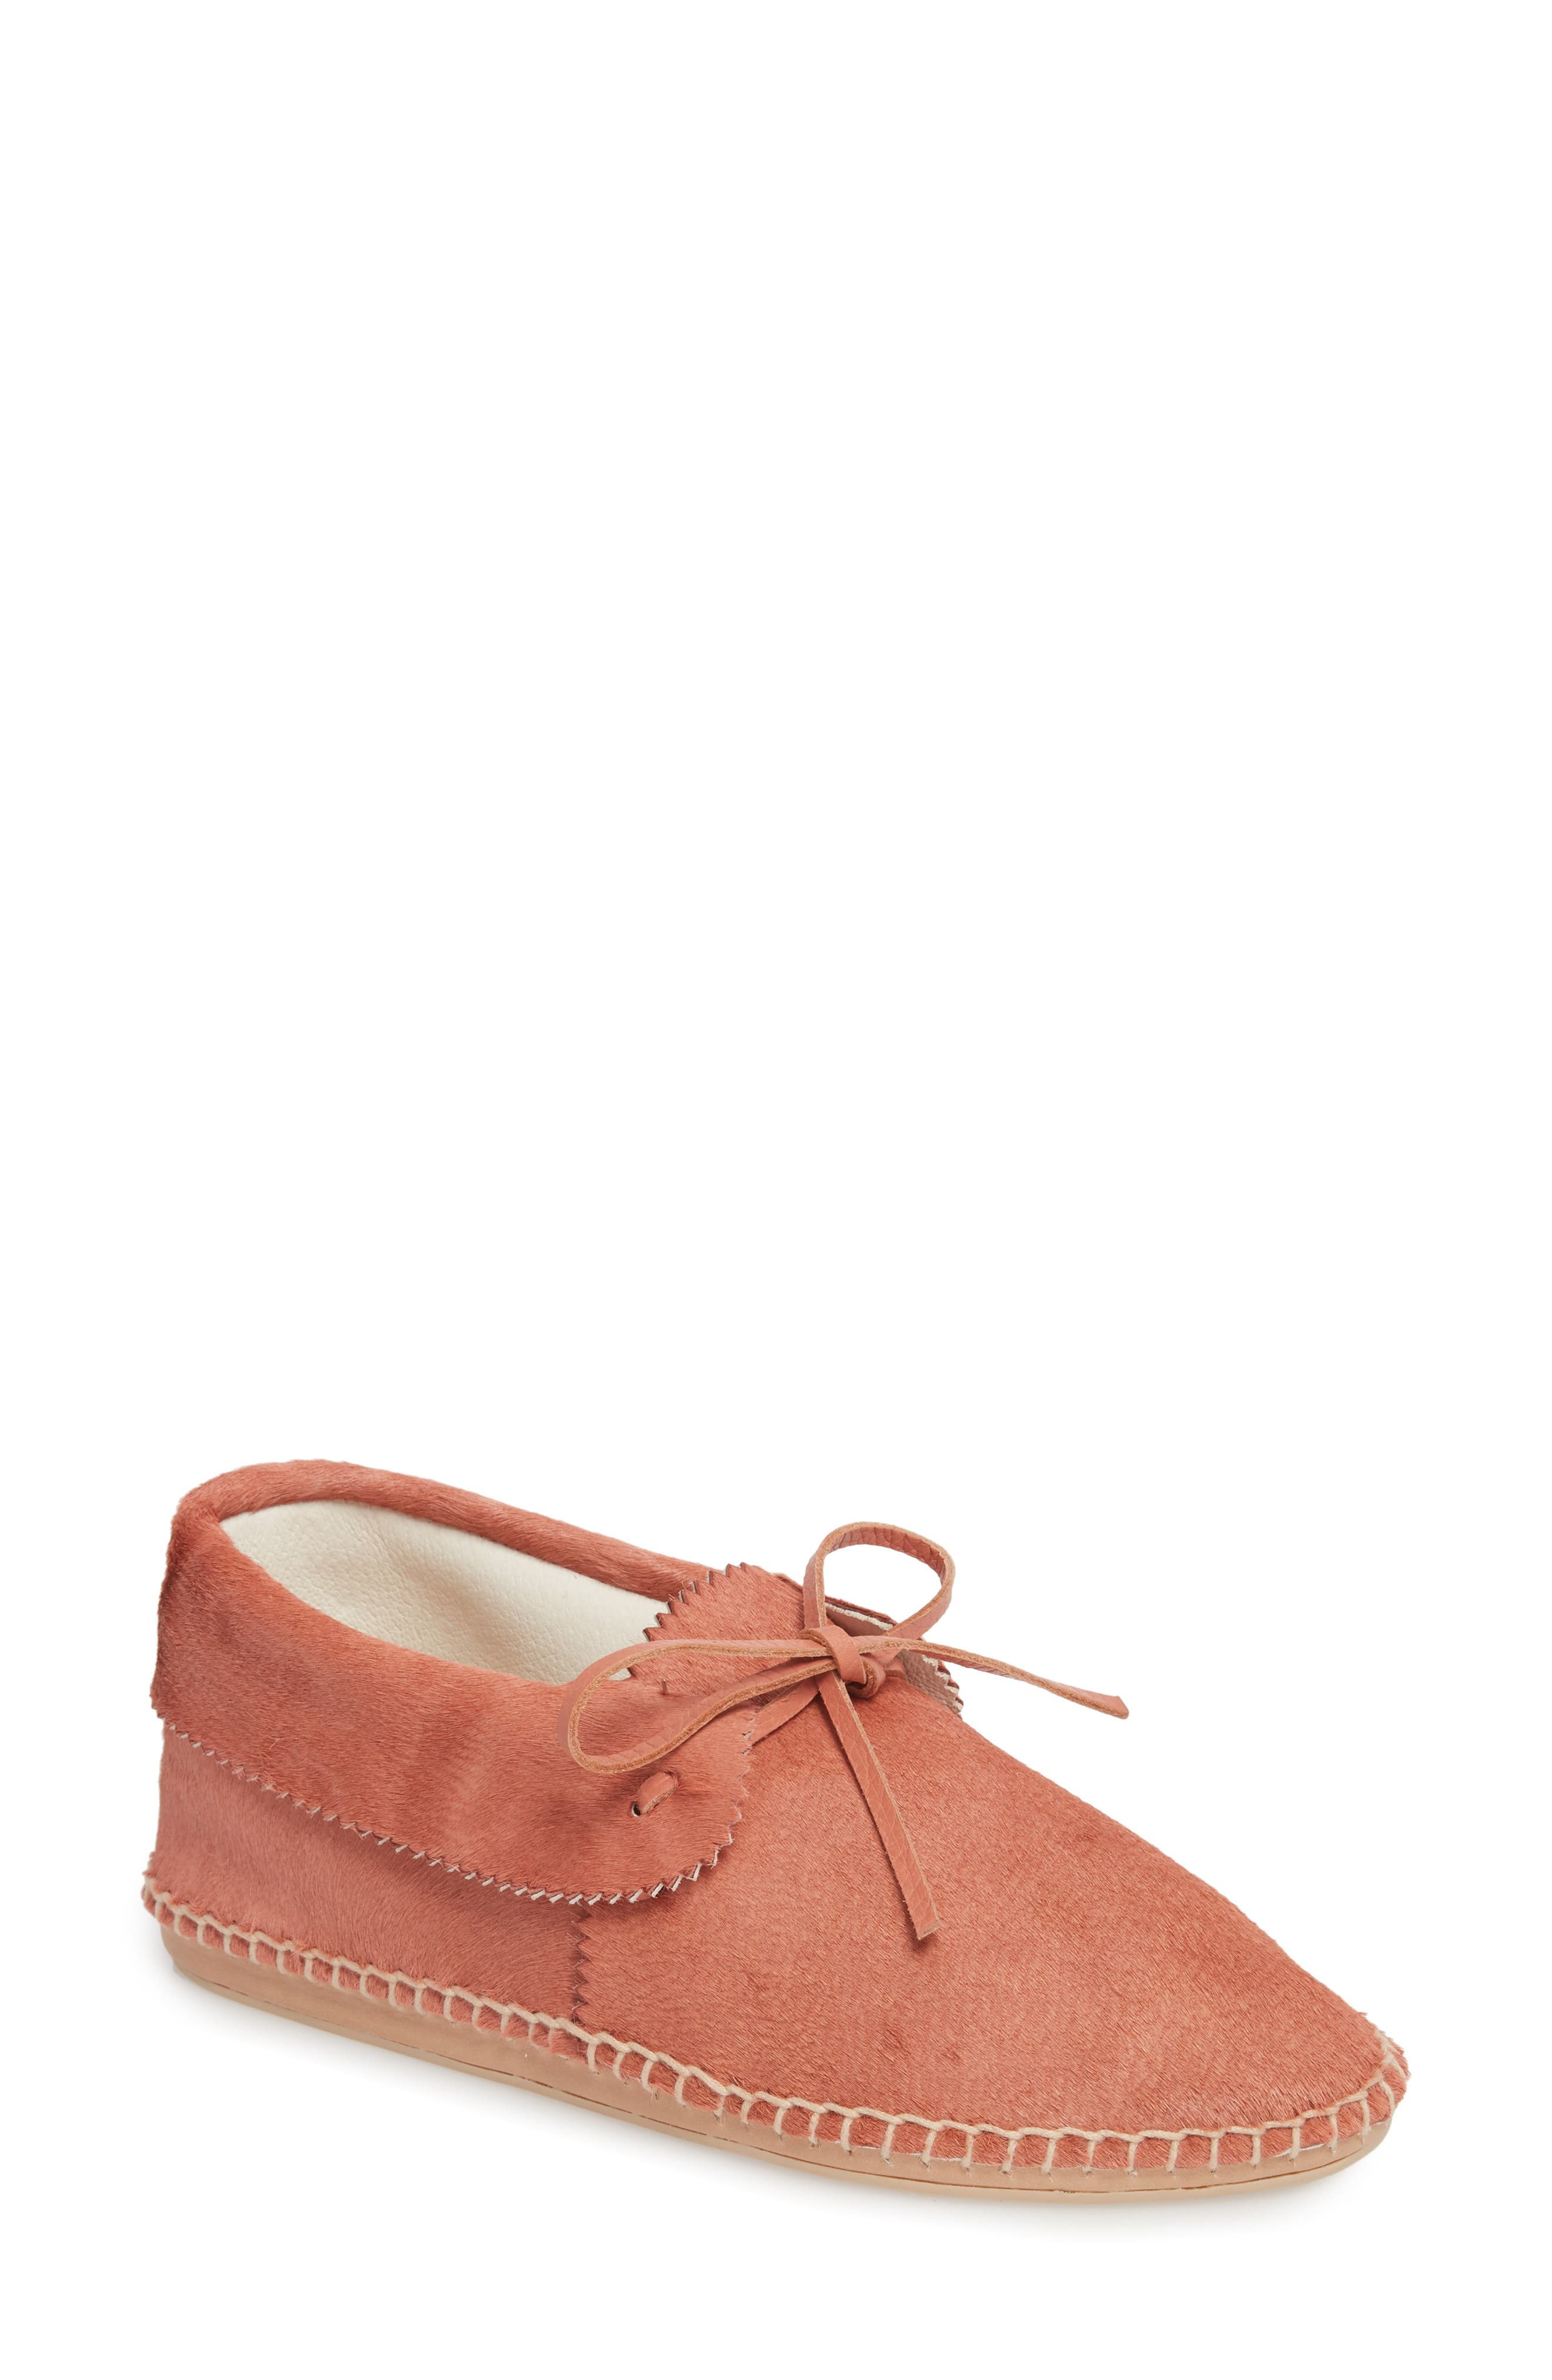 Canyon Moccasin Flat,                             Main thumbnail 1, color,                             DUSTY ROSE